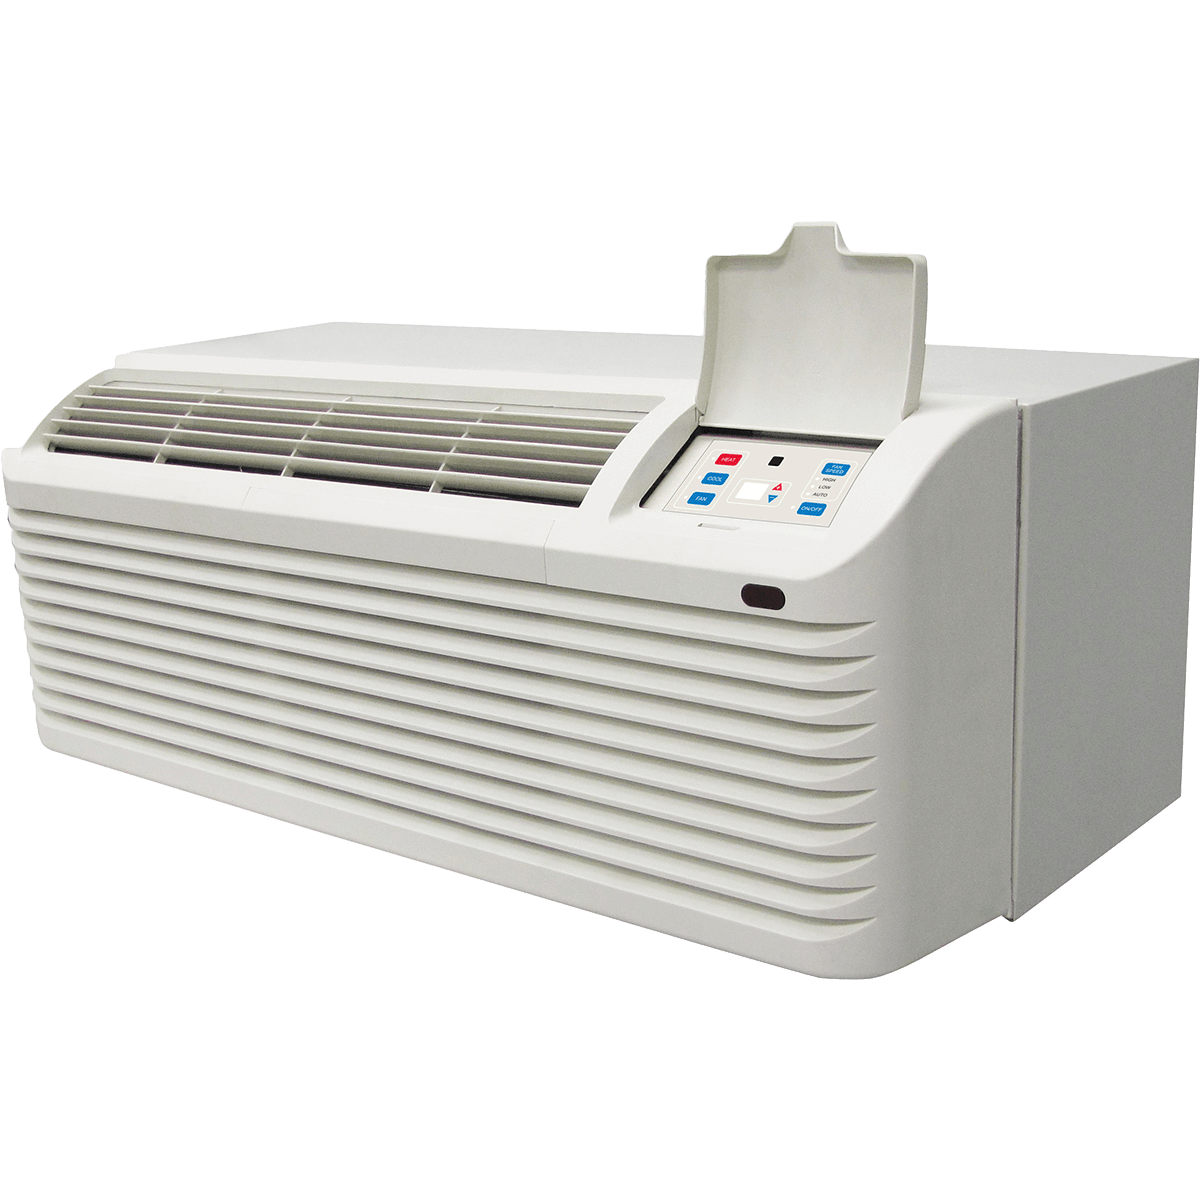 Comfort-Aire 12,000 BTU Packaged Terminal Air Conditioner and Heater